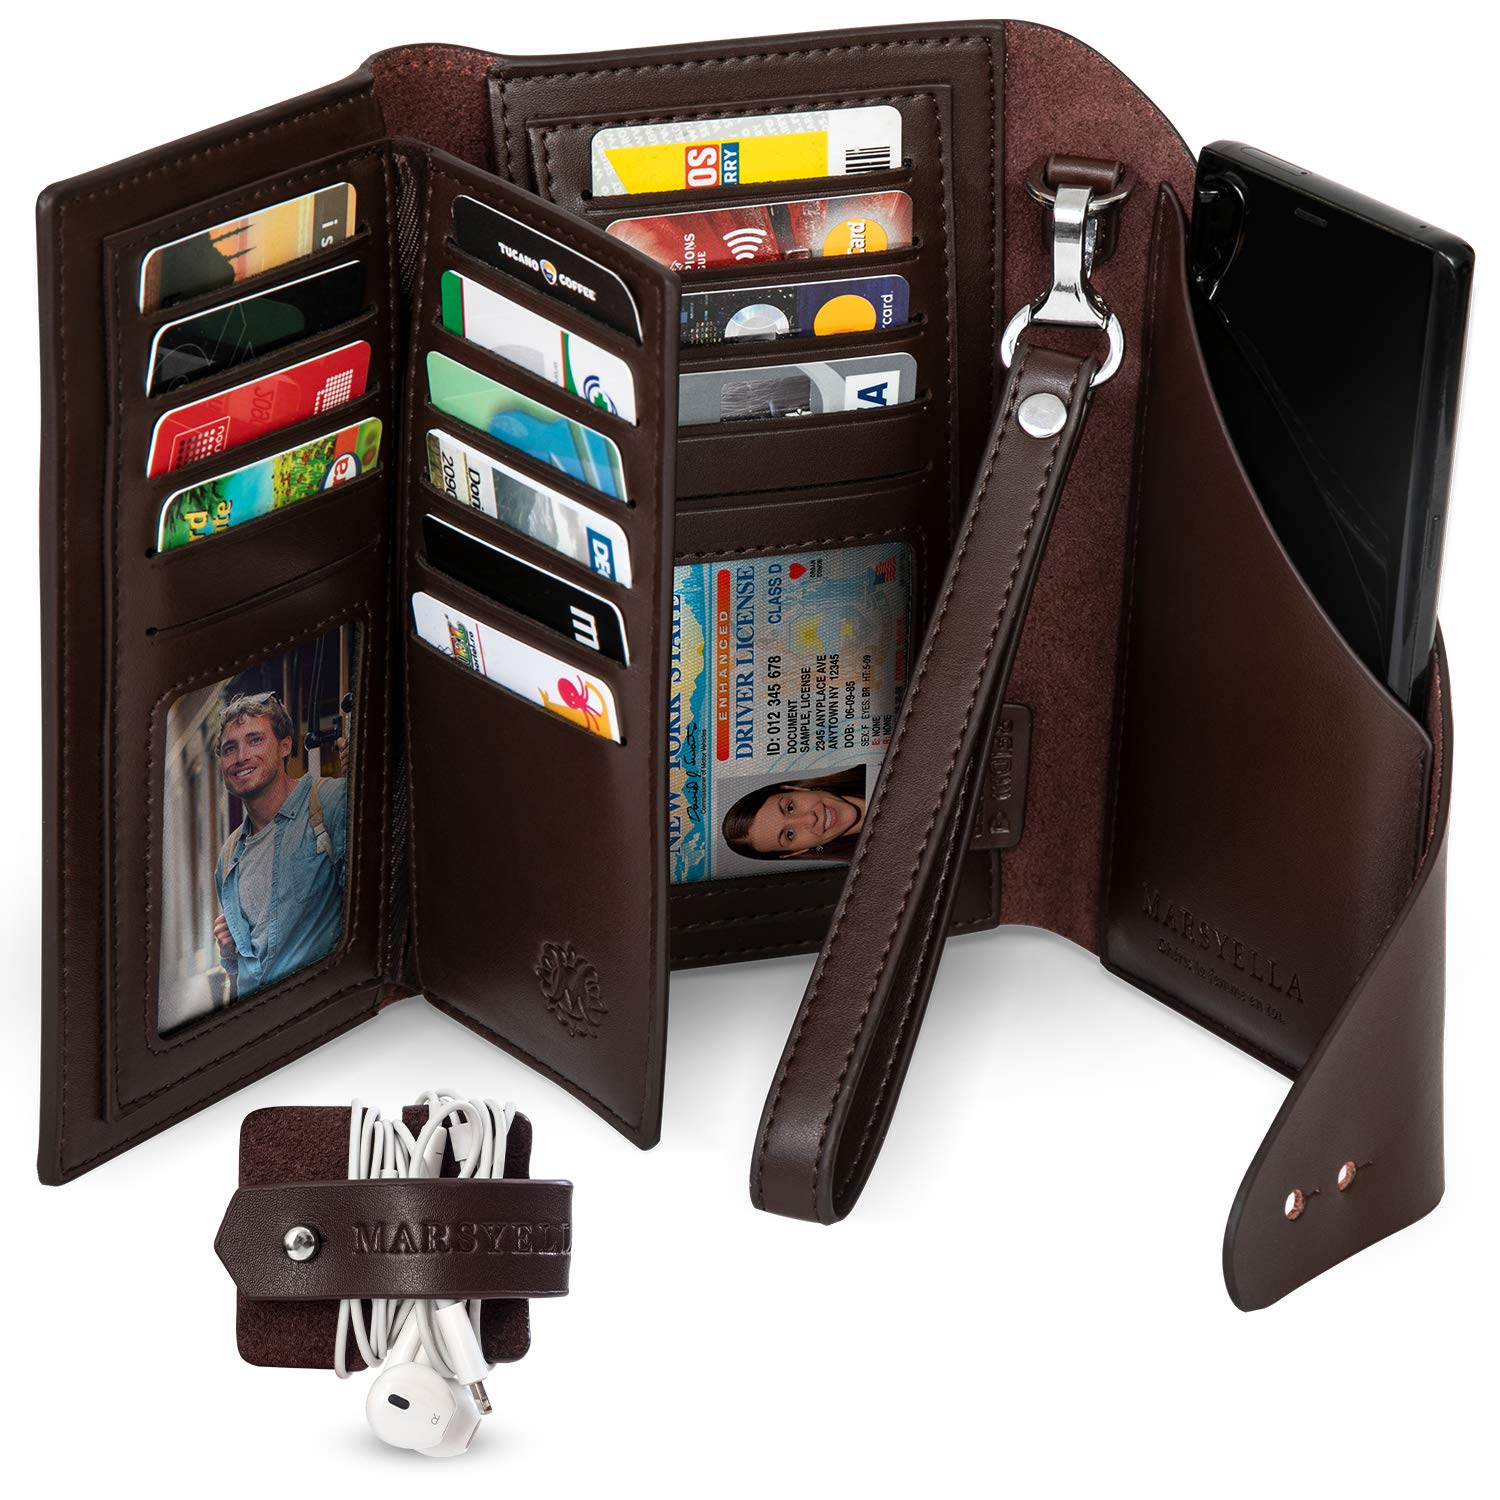 Marsyella RFID Wallet for Women with Wrist Strap - Credit Card & Passport Holder for Women - Large Brown Wristlet Wallet with Cell Phone Holder included by M MARSYELLA